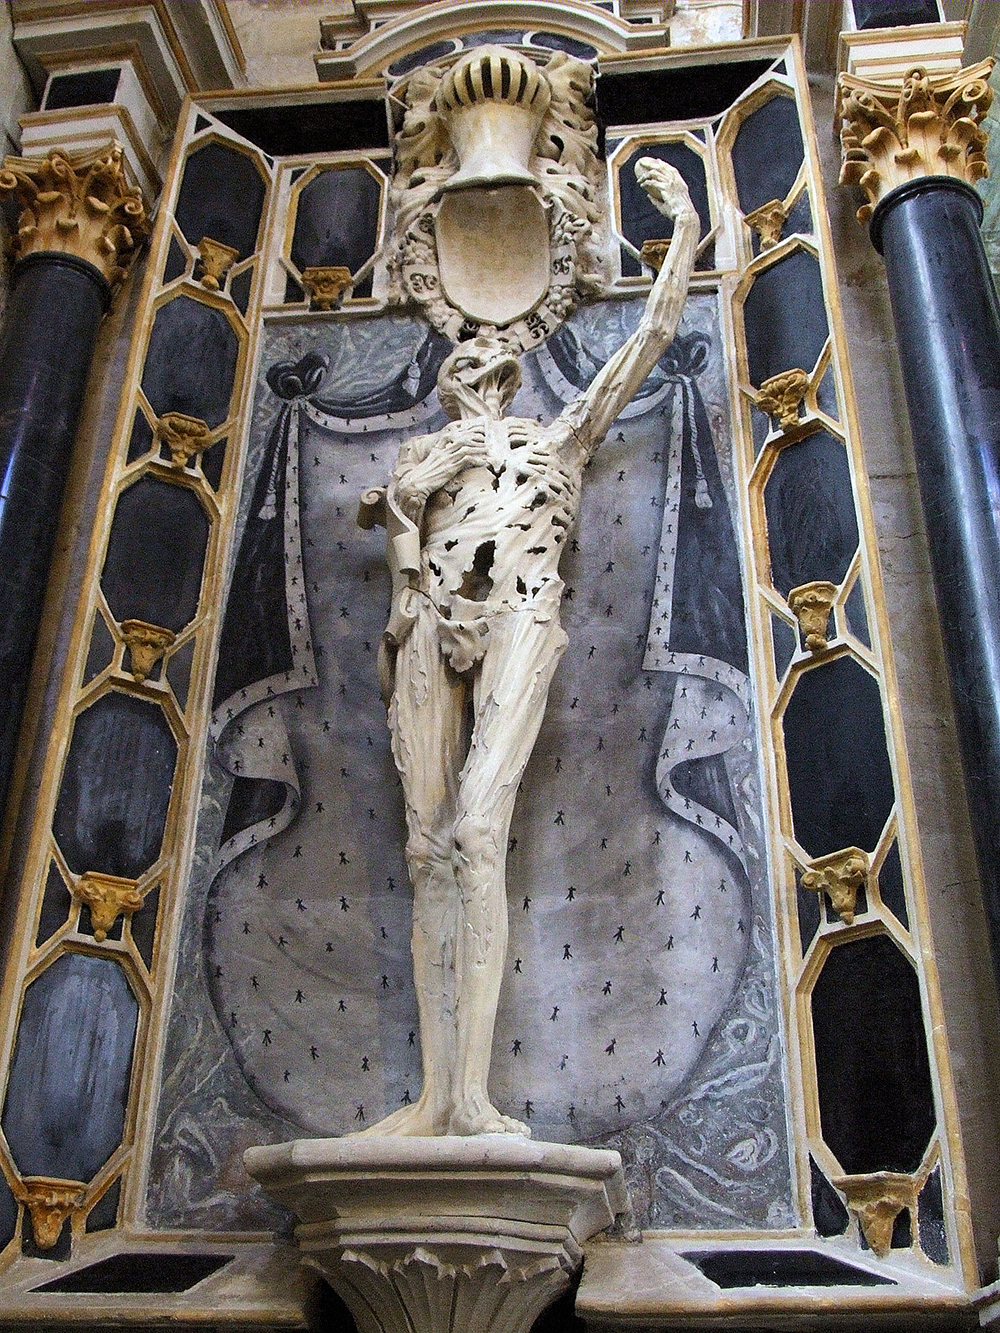 The cadaver tomb of René de Chalon, 2005. Photograph by MOSSOT. Wikimedia Commons.